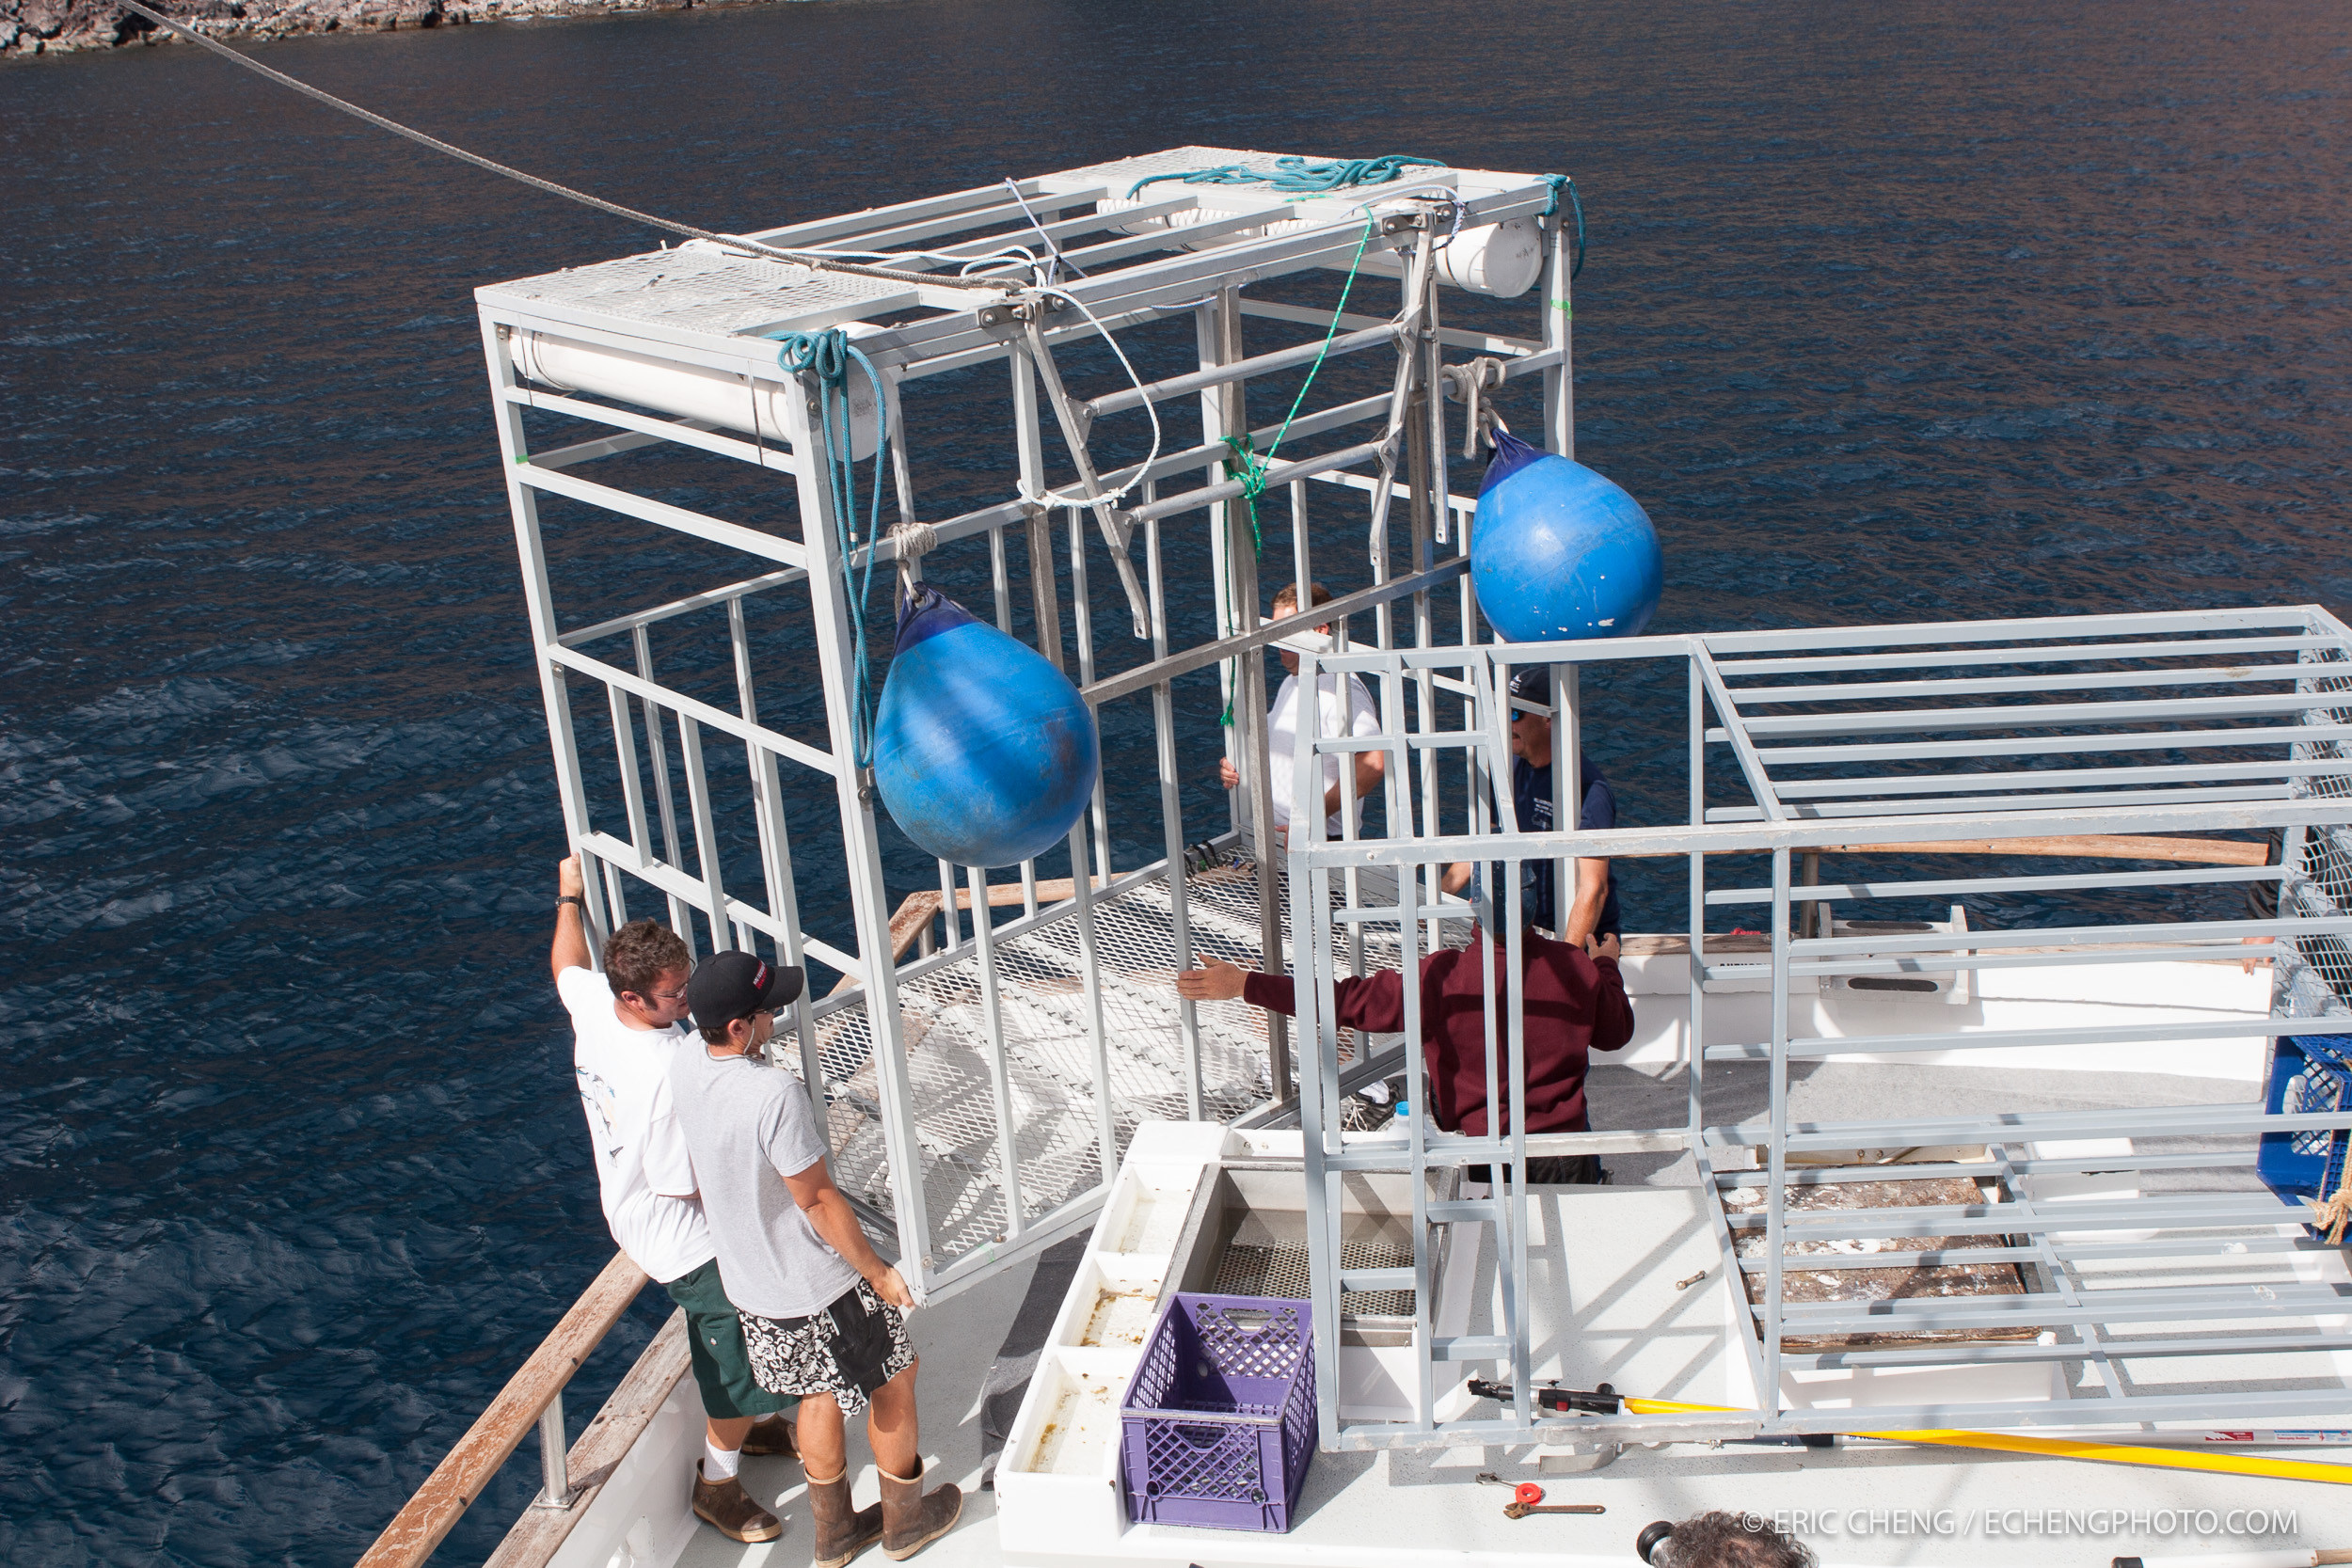 Deploying shark cages in the water